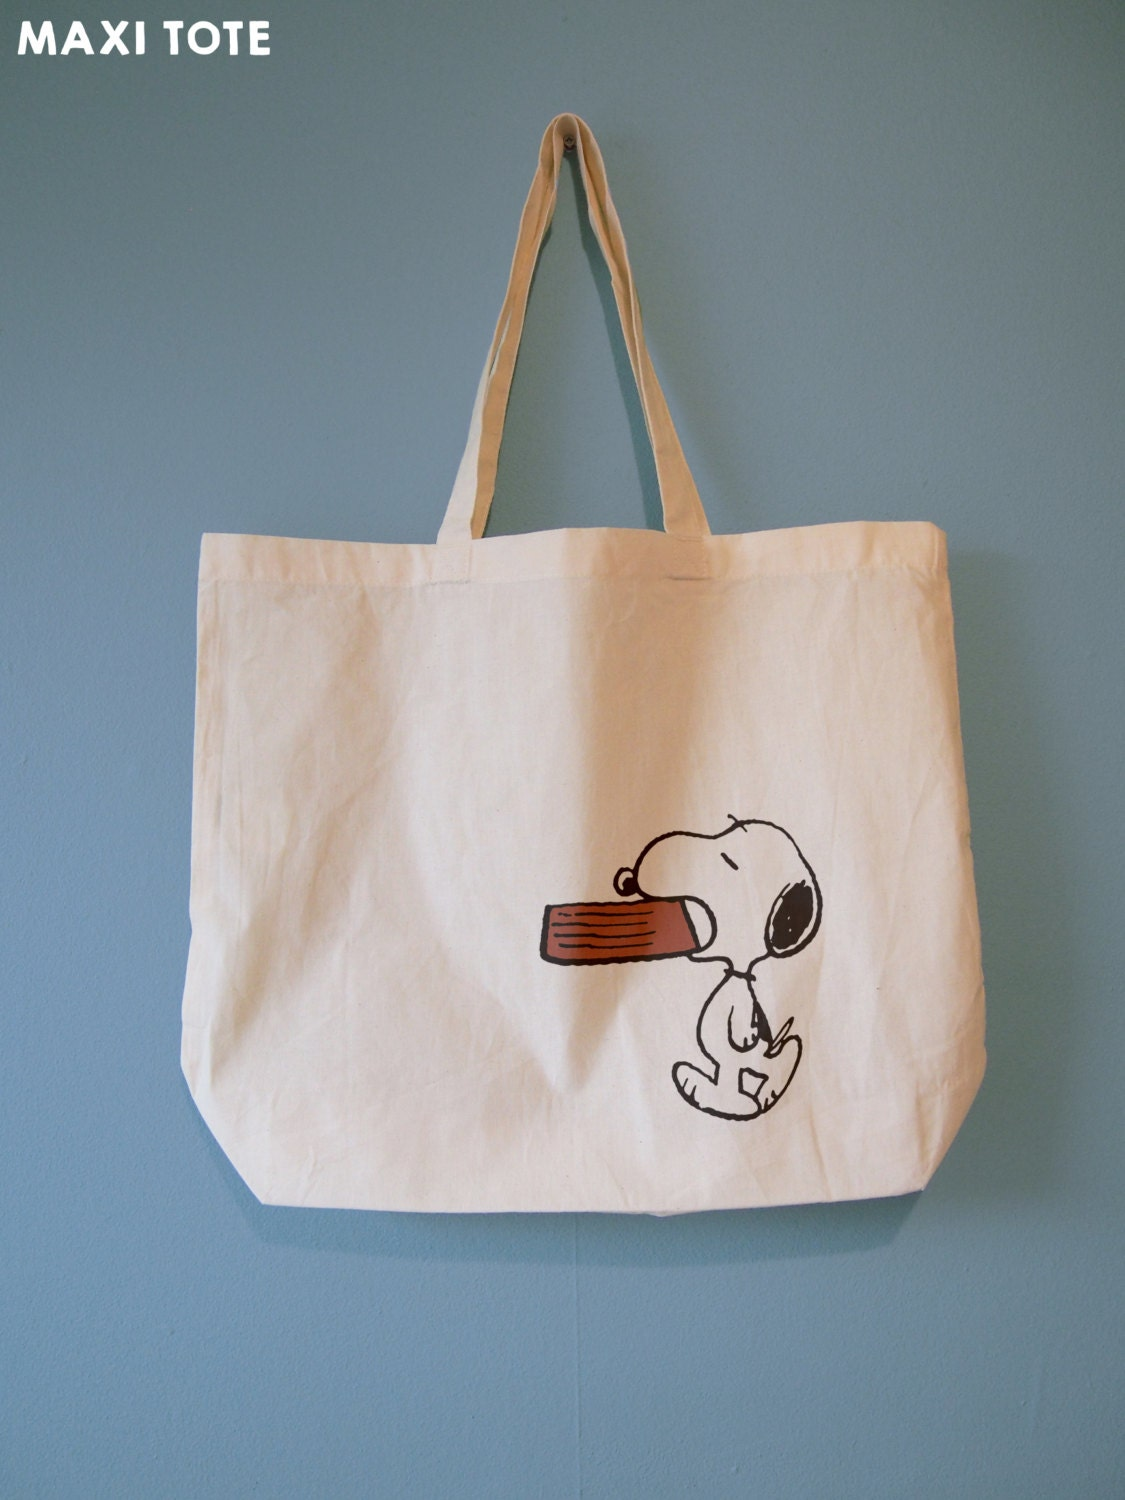 Hungry Snoopy carrying his Dog Bowl, Natural Cotton Tote Bag or Maxi Bag